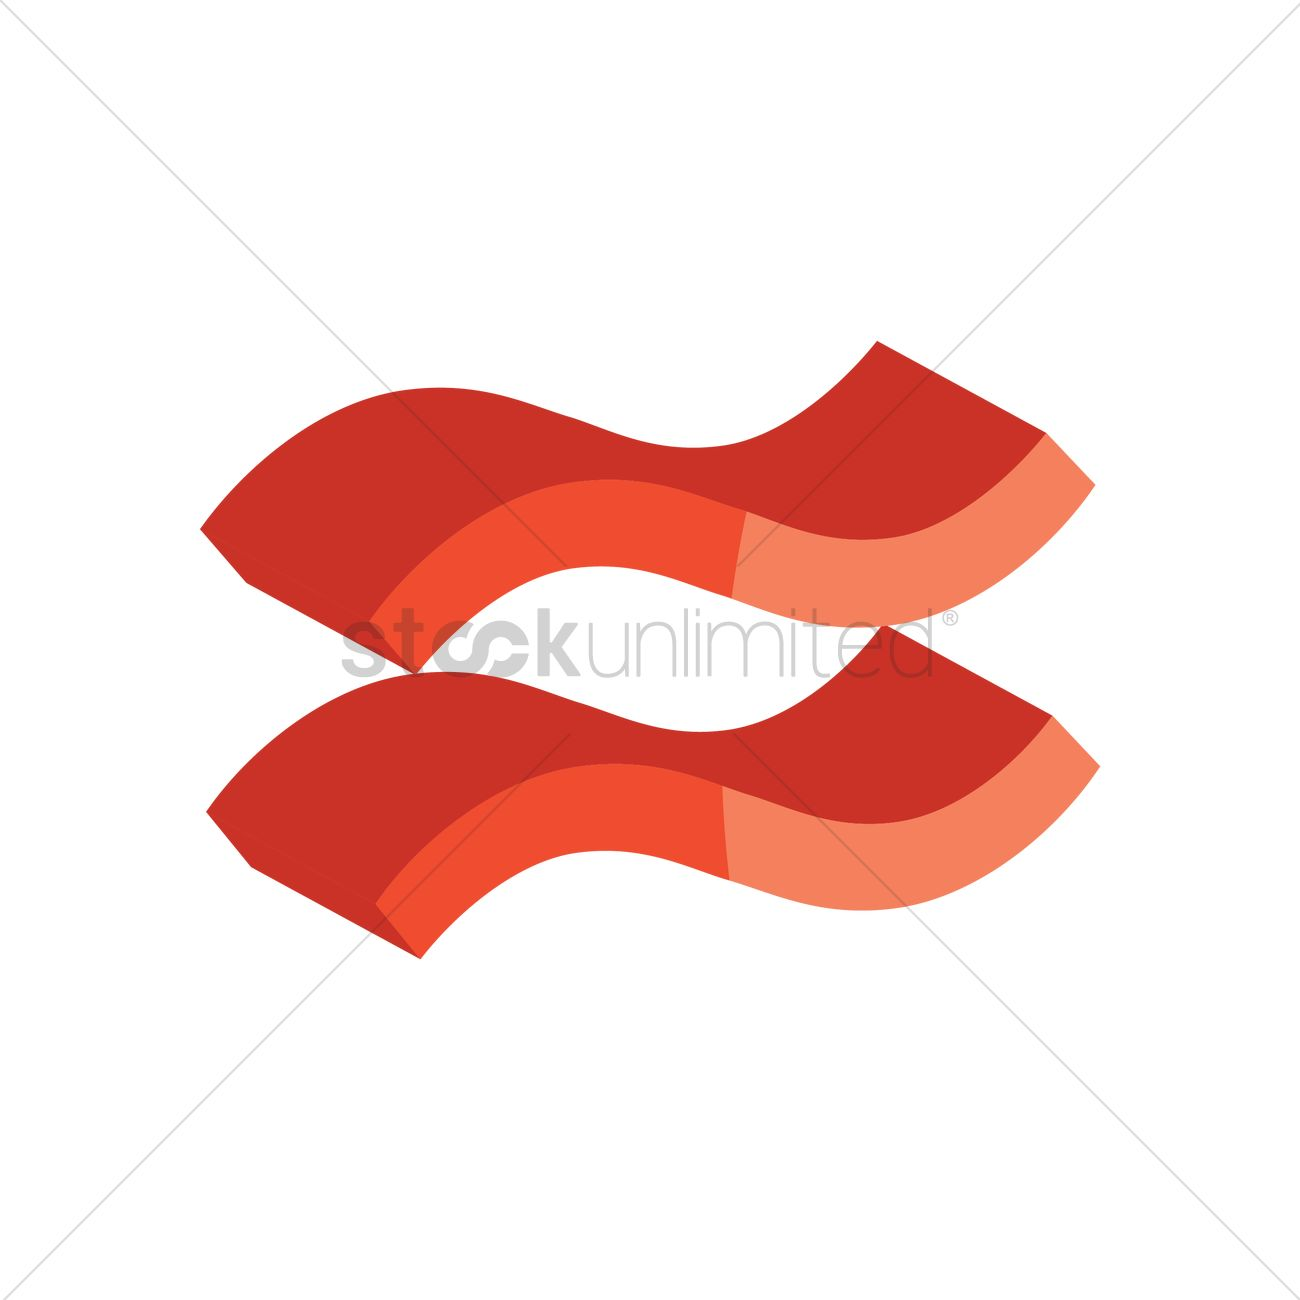 Almost Equal Symbol Vector Image 1866802 Stockunlimited